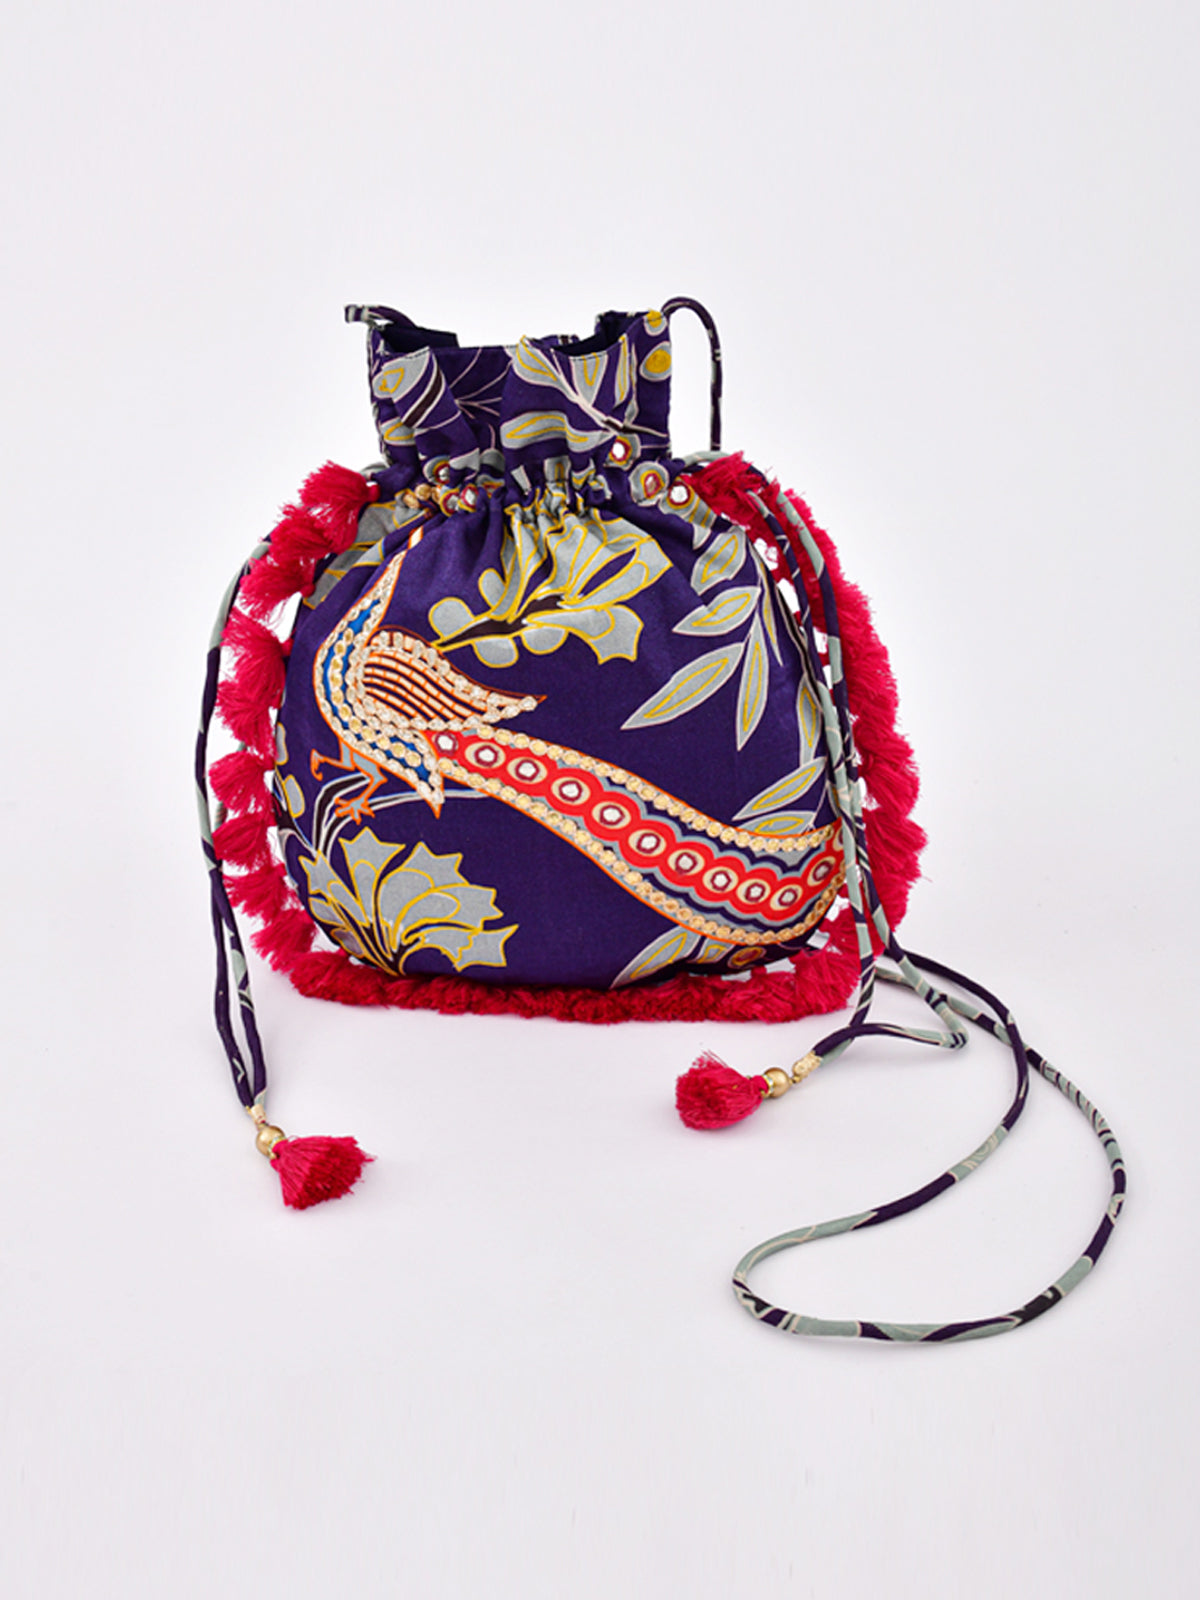 MORBAGH PEACOCK BLUE EMBRODIED POTLI BAG WITH TASSELS